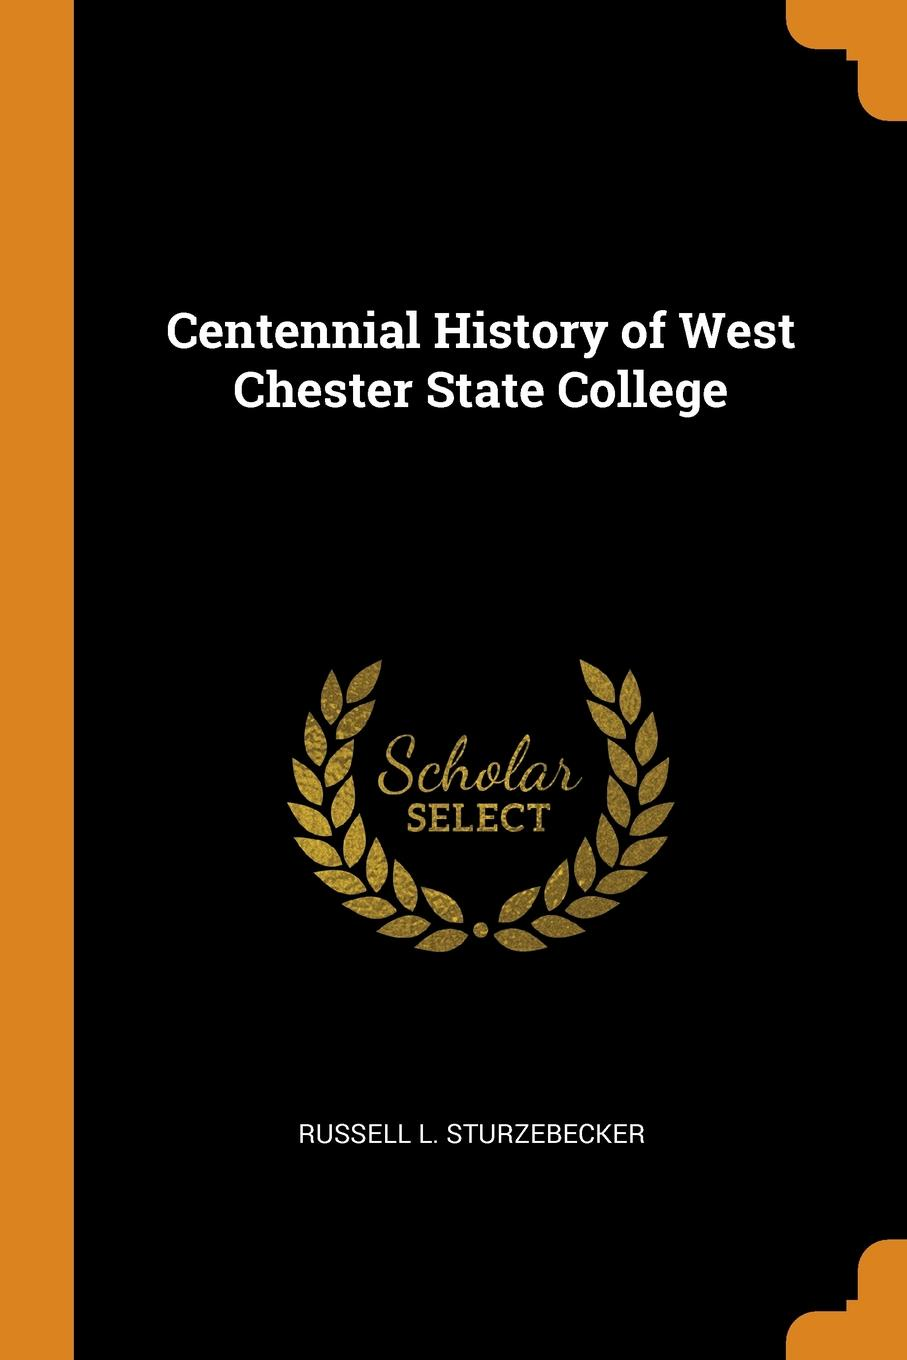 Centennial History of West Chester State College